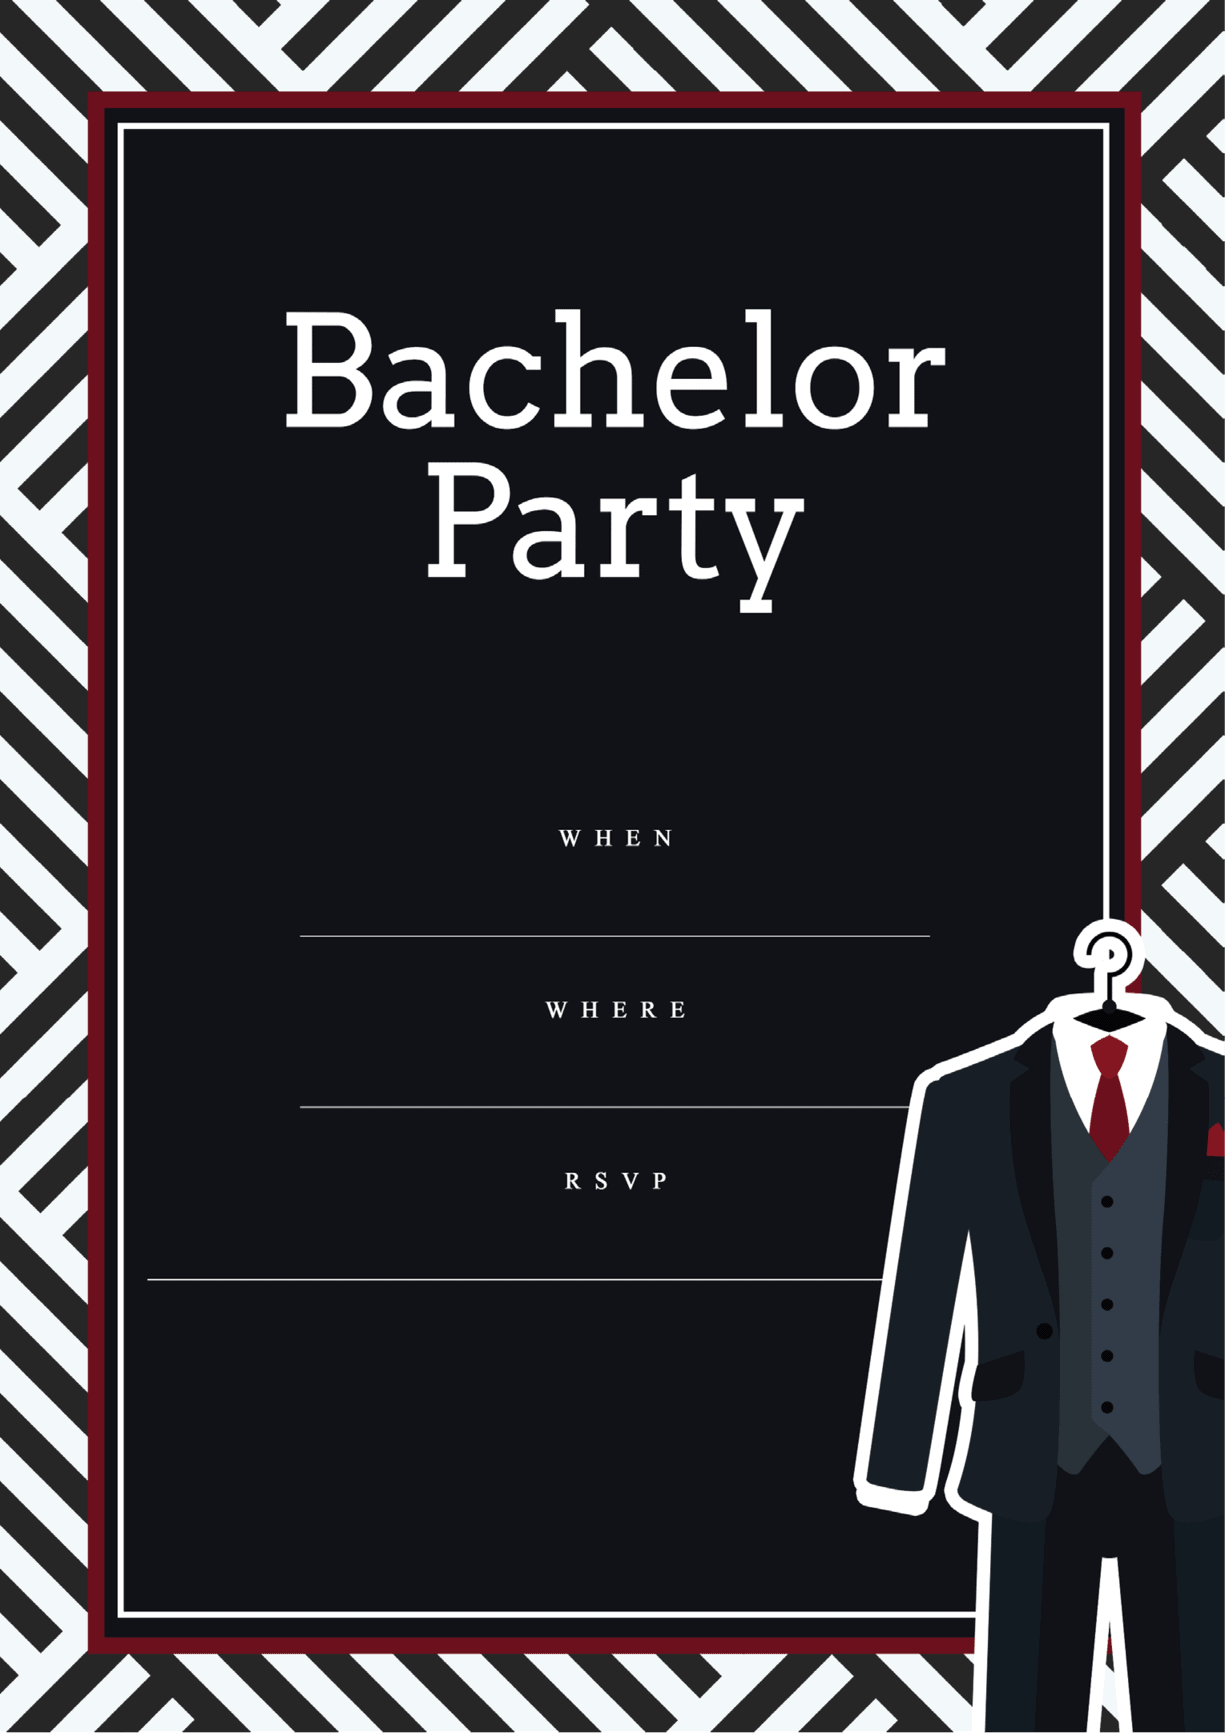 bachelor party invititation black suit and tie